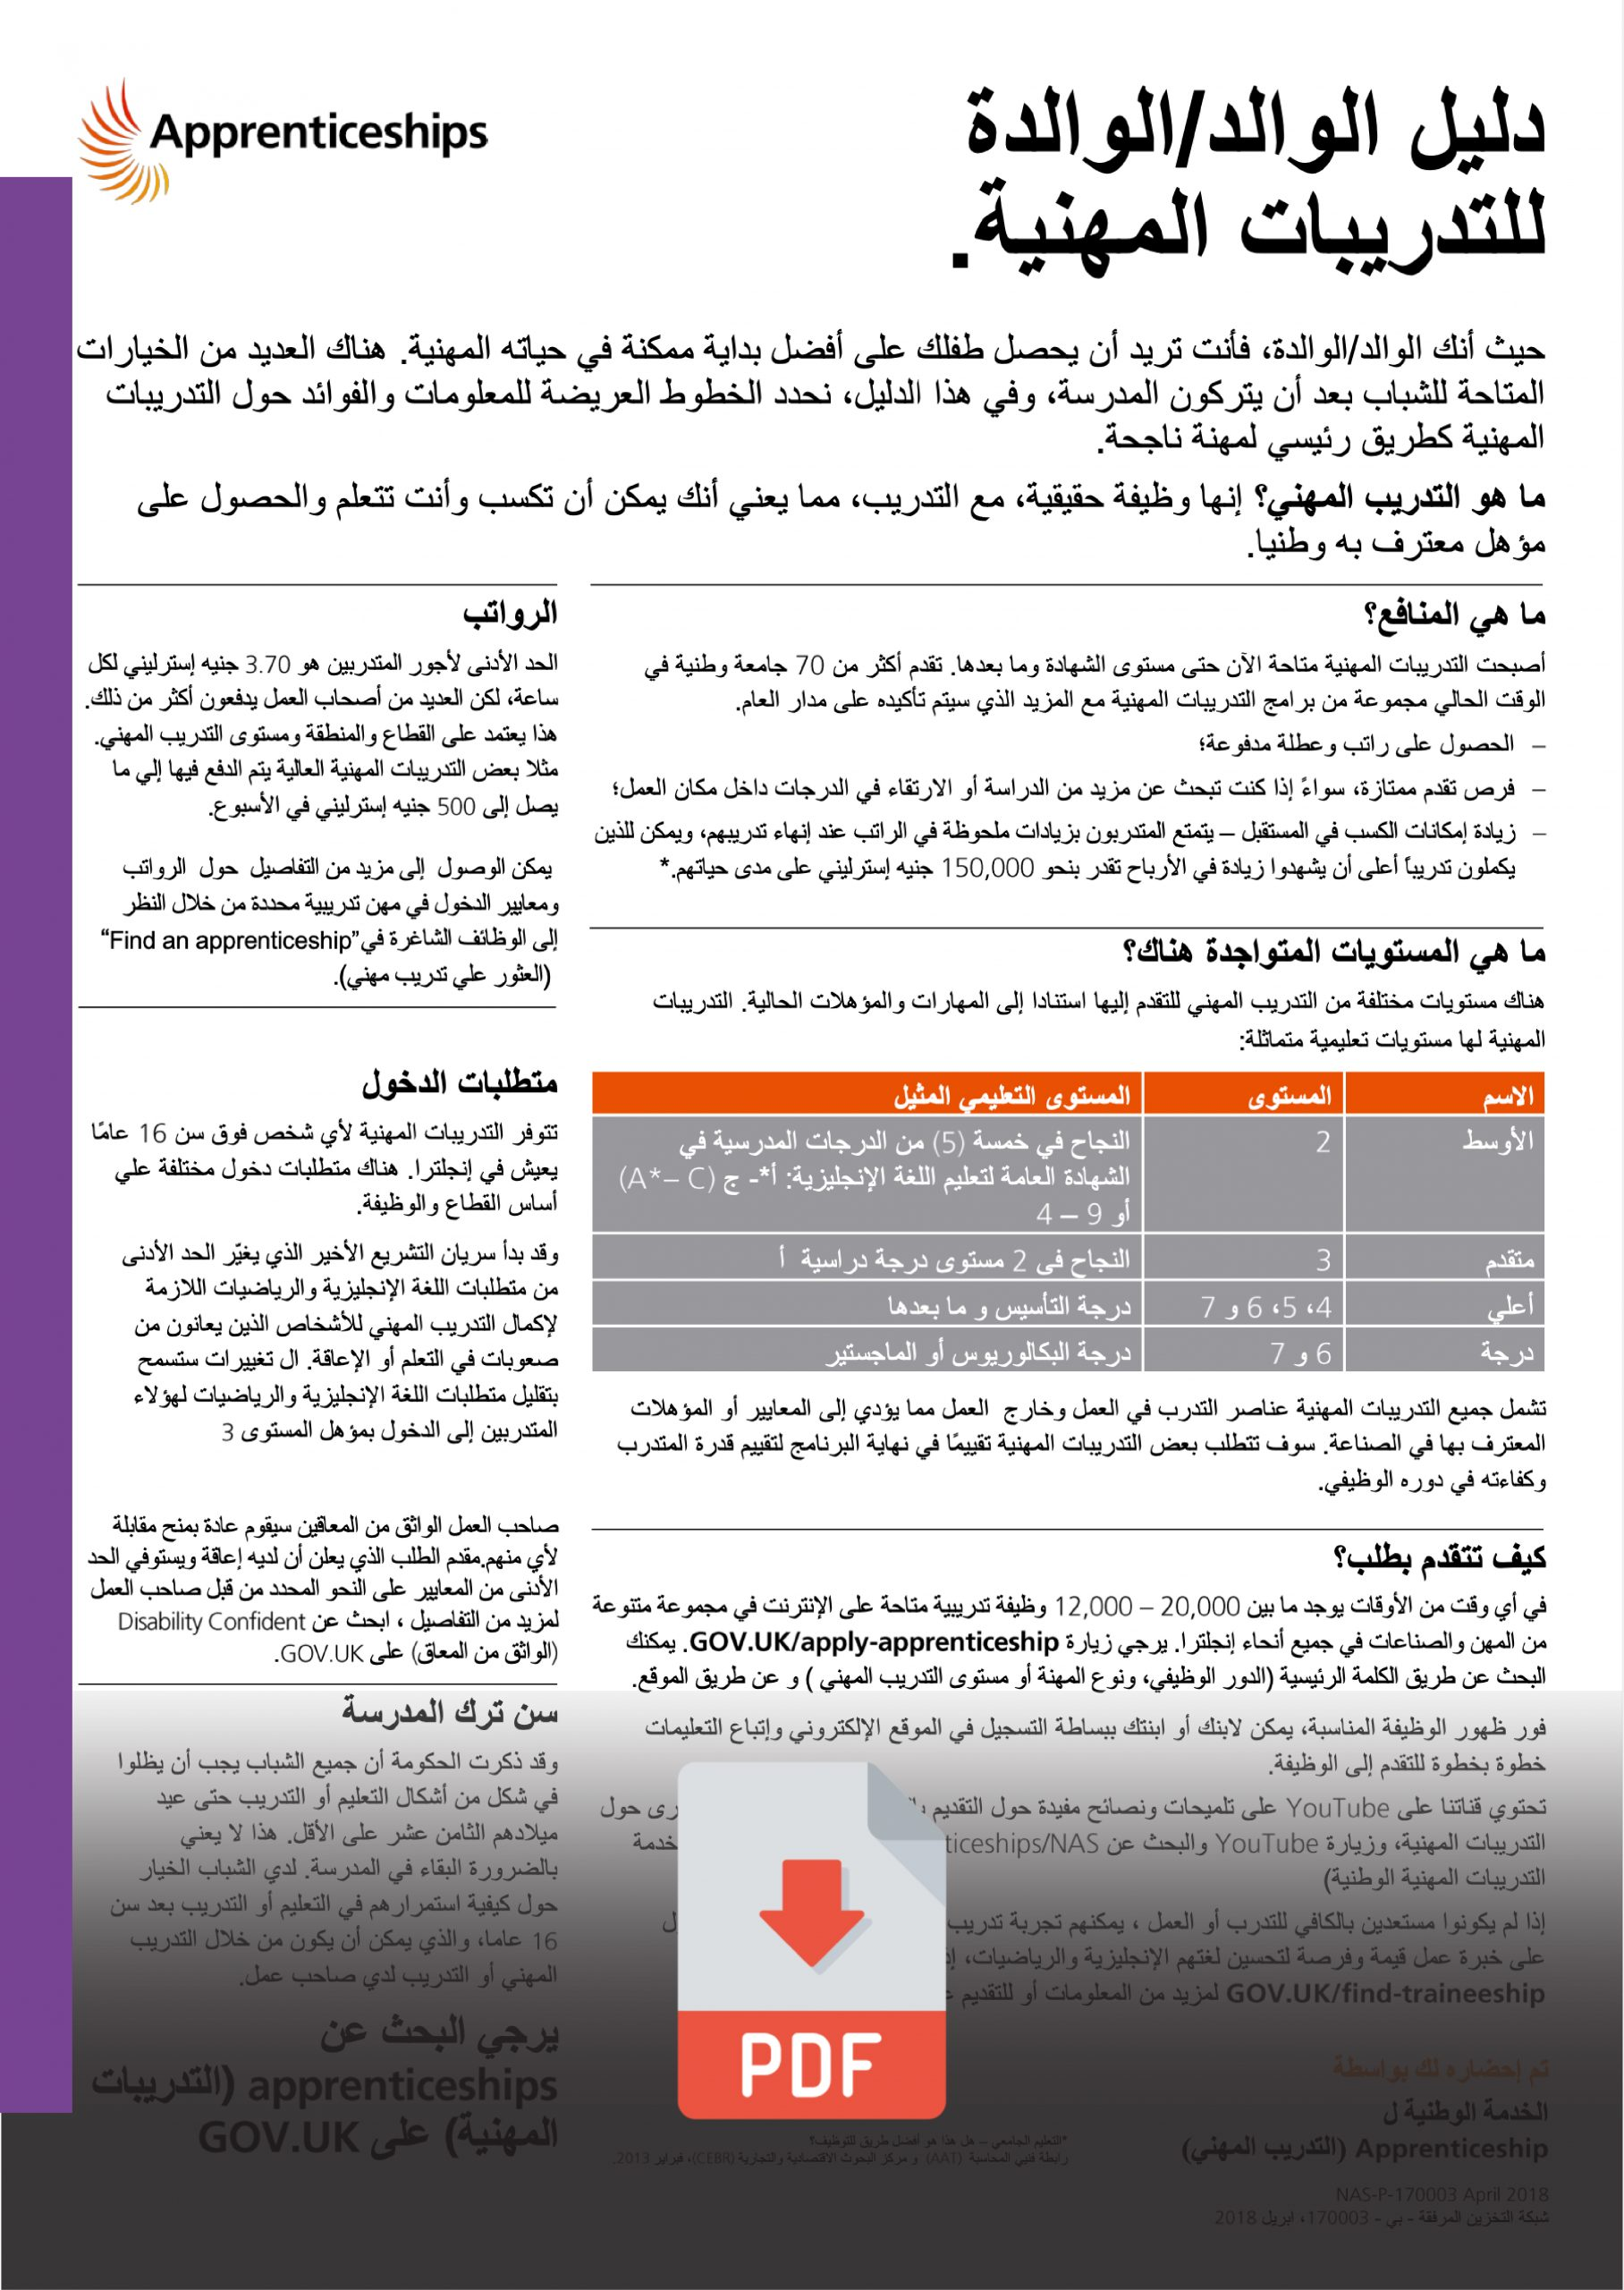 Arabic - Parents Guide to Apprenticeships